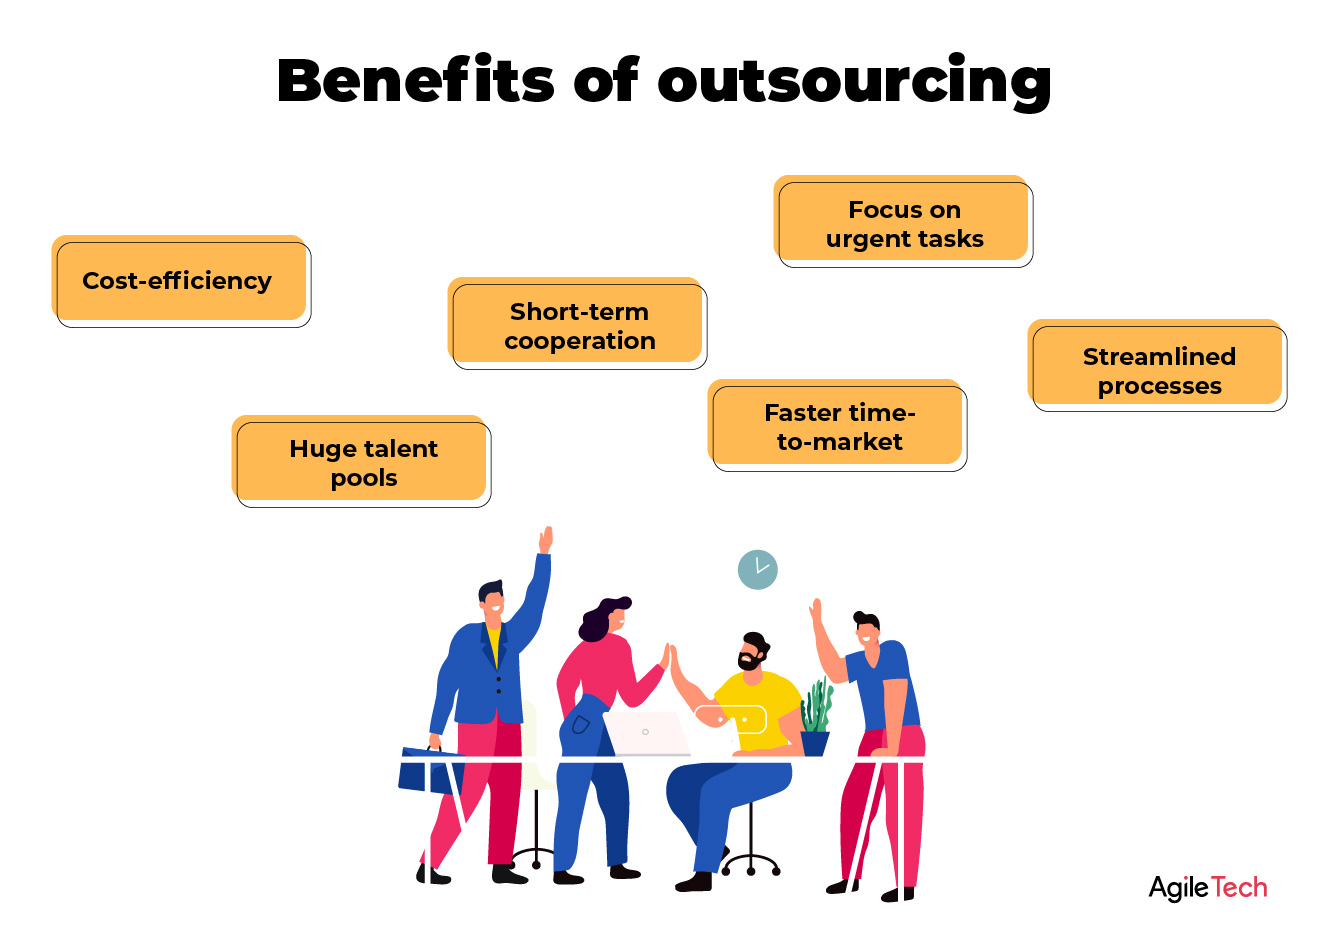 benefits of outsourcing for small businesses, advantages of outsourcing, outsourcing vs in-house software development, agiletech